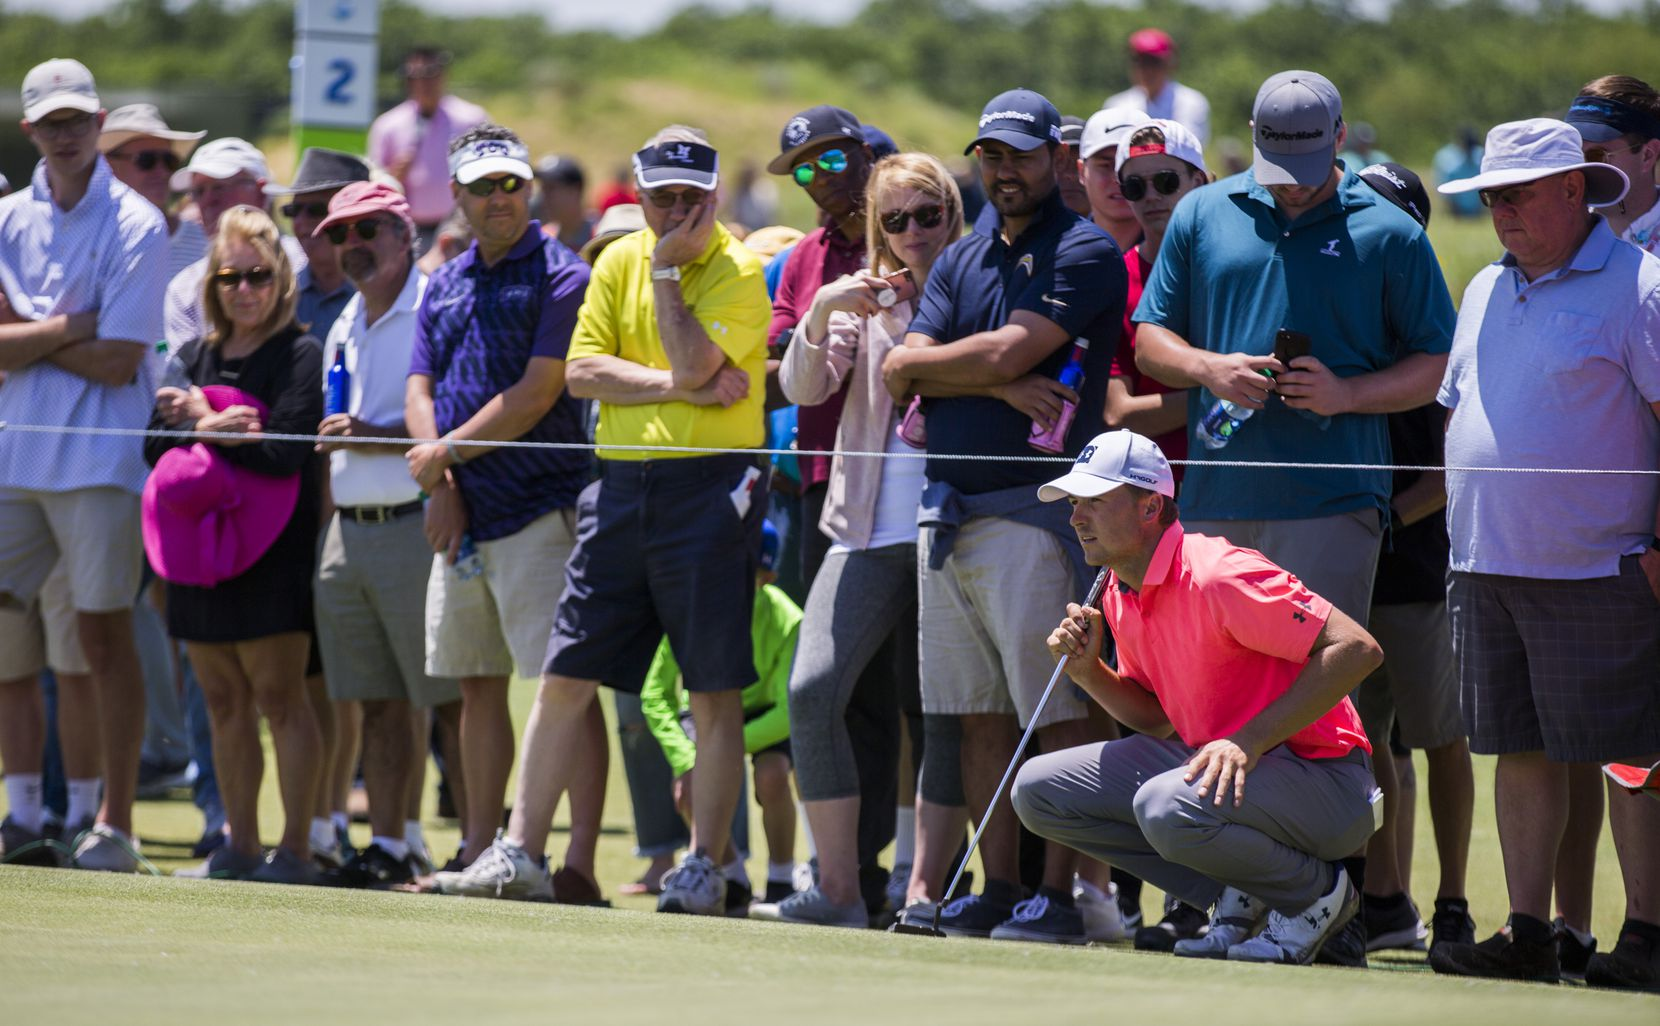 Jordan Spieth lined up a shot on the first green during round 4 of the AT&T Byron Nelson golf tournament 2019 at Trinity Forest Golf Club in Dallas. (Ashley Landis/The Dallas Morning News)